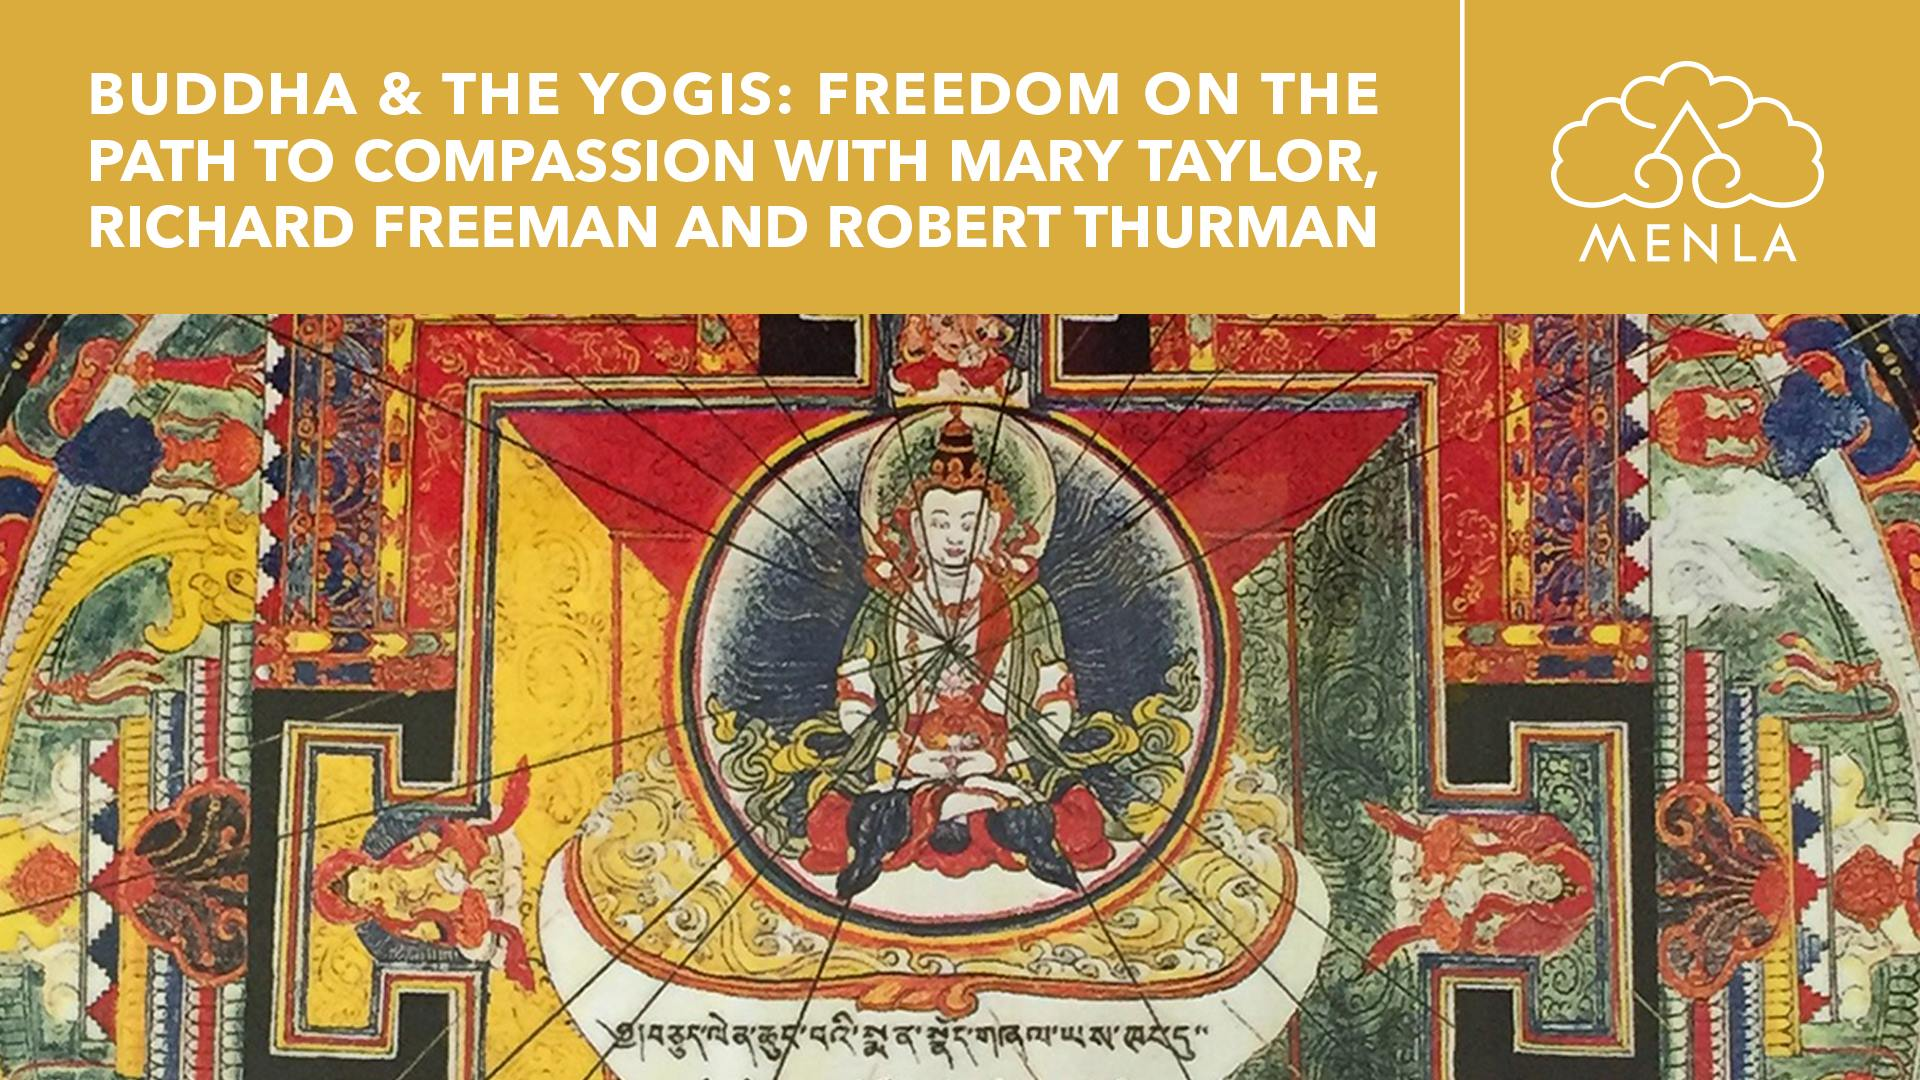 Buddha and the Yogis : Freedom on the Path to Compassion @ Menla